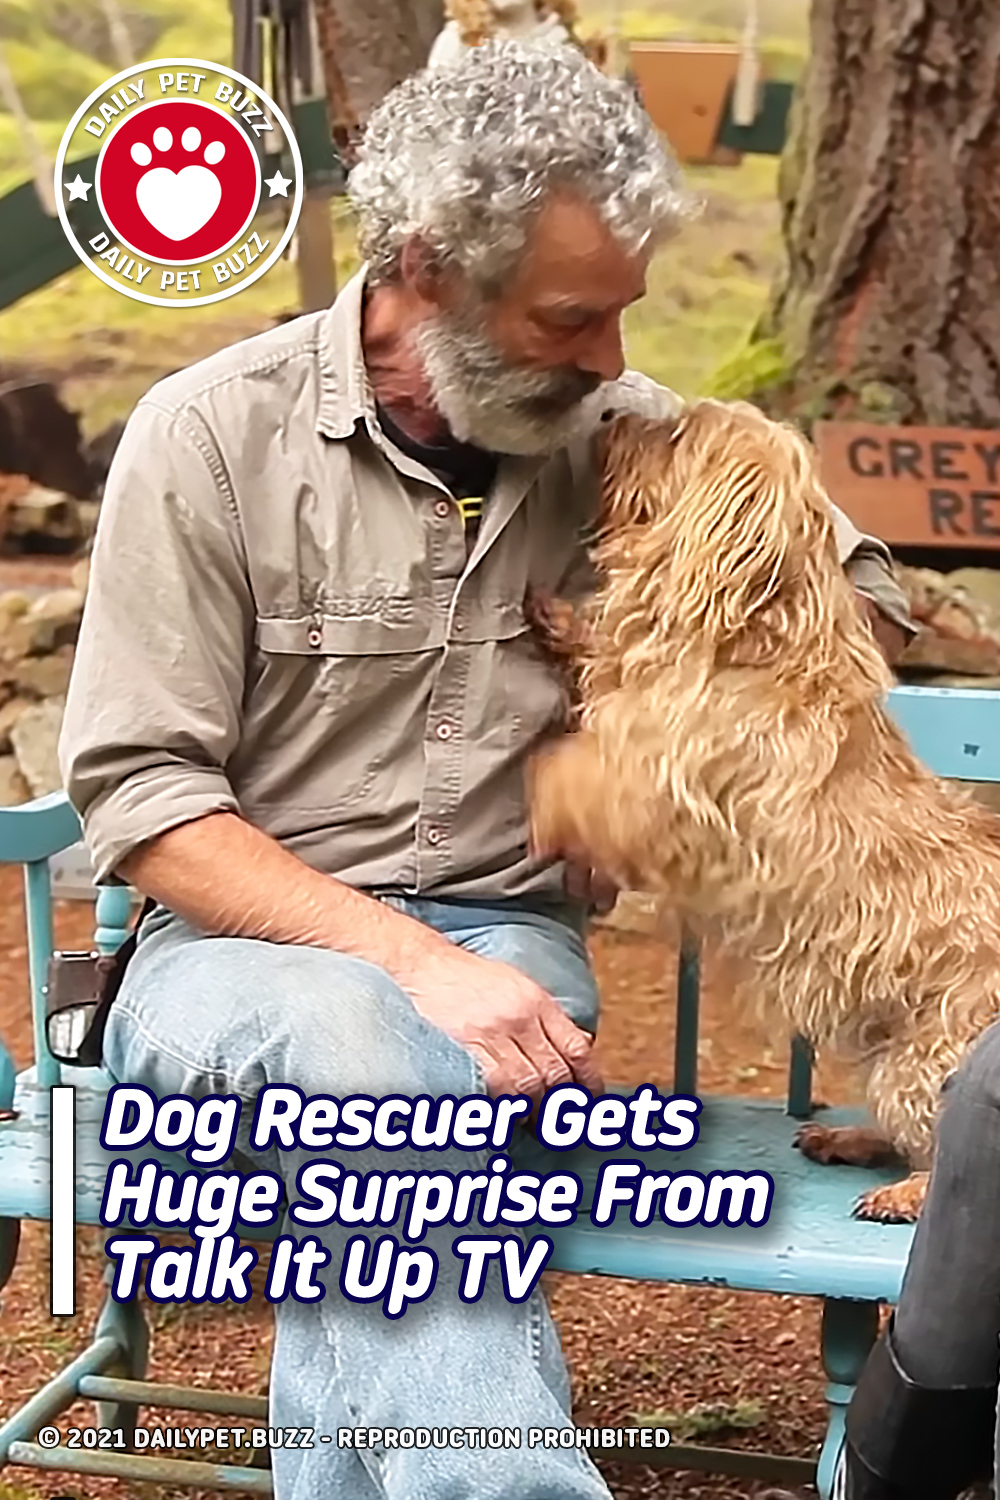 Dog Rescuer Gets Huge Surprise From Talk It Up TV